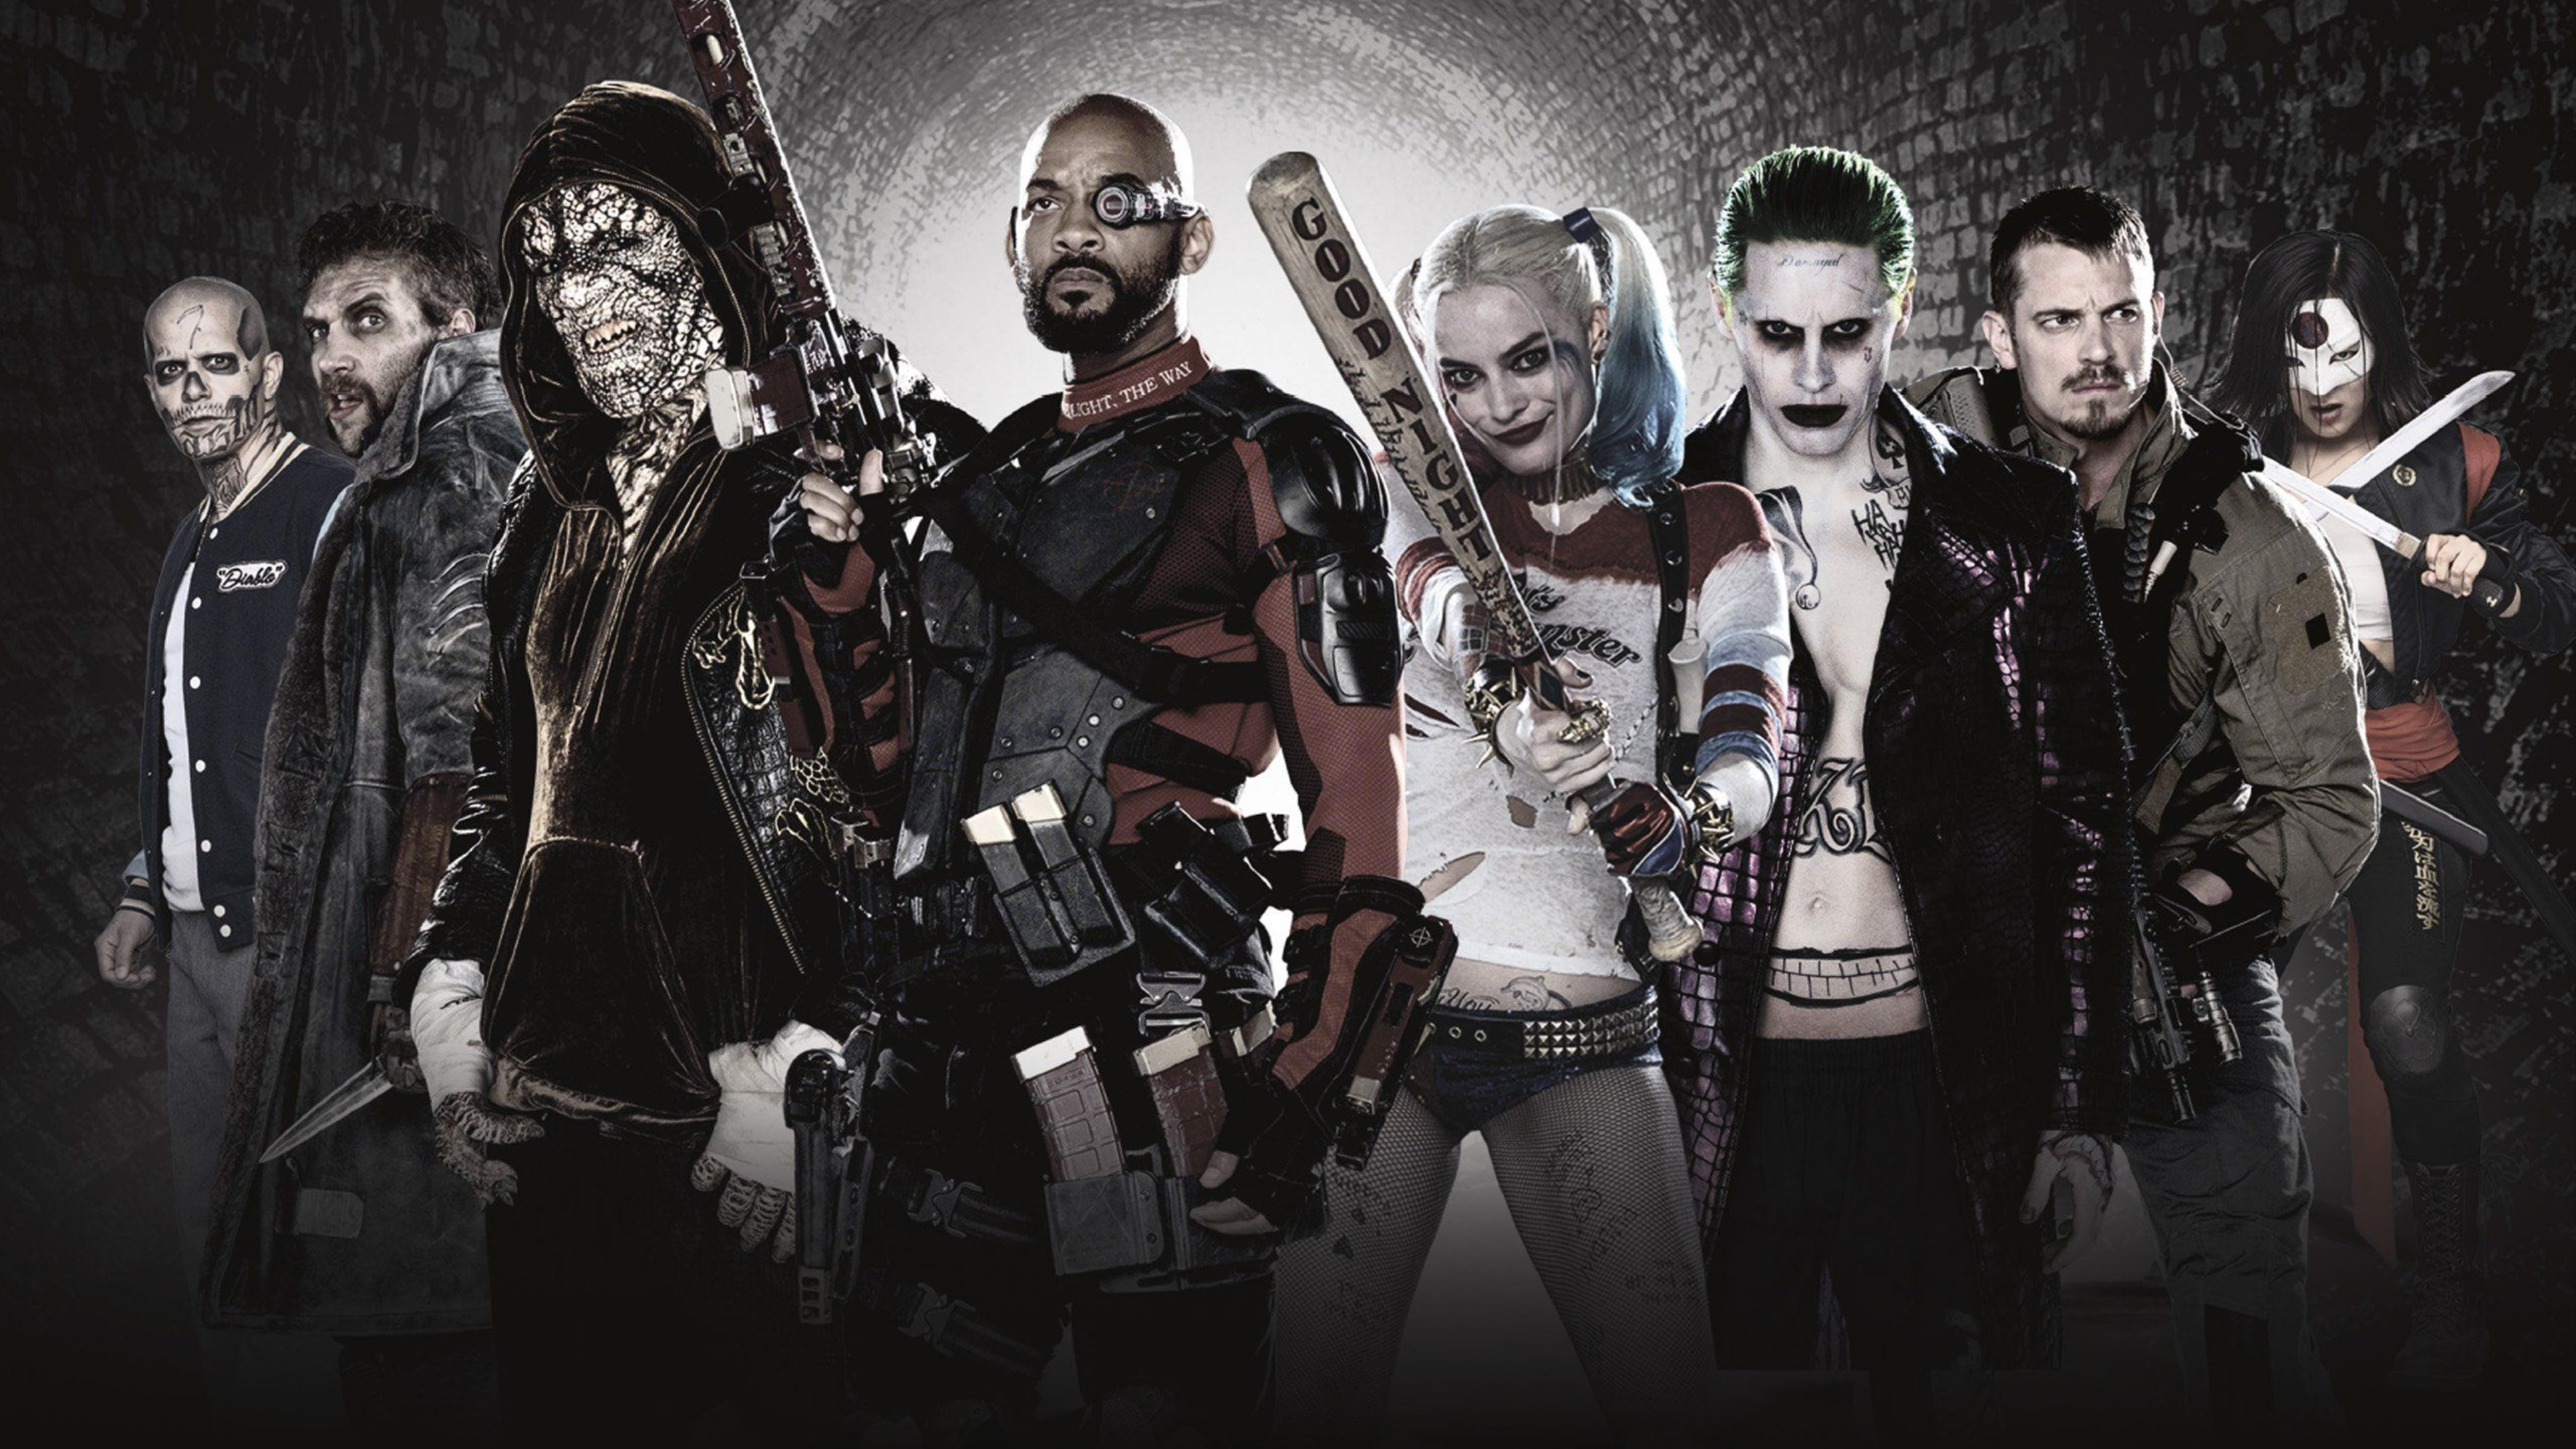 Suicide Squad Characters Hd Wallpaper 3840x2160 Gludy